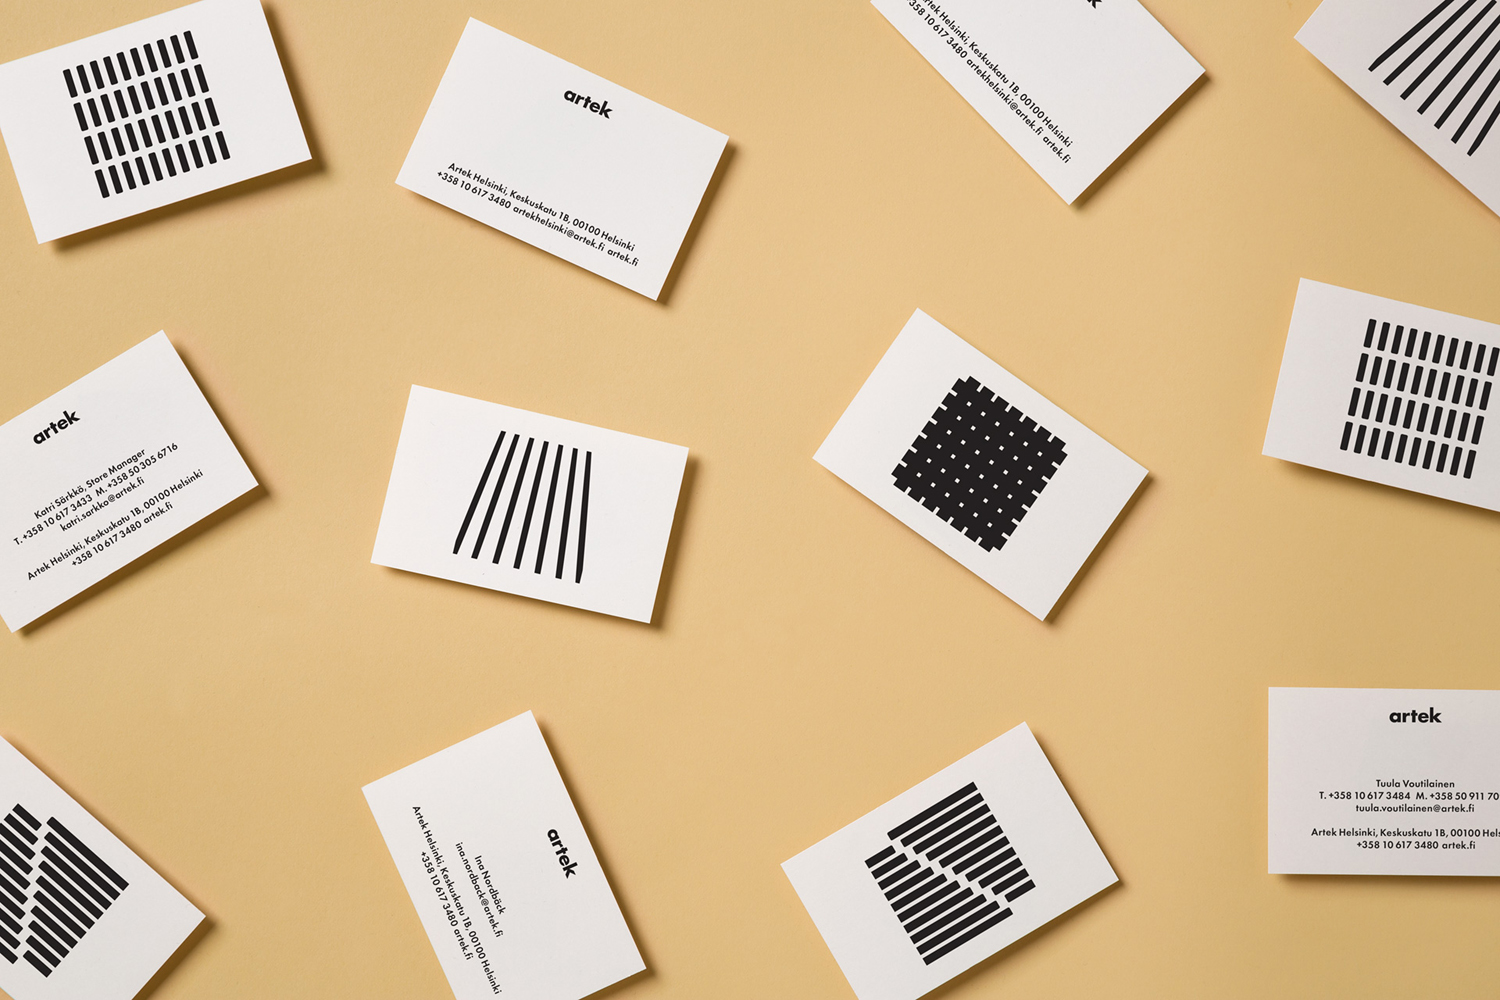 Brand identity and business cards by graphic design studio Tsto for furniture and homeware store Artek Helsinki.